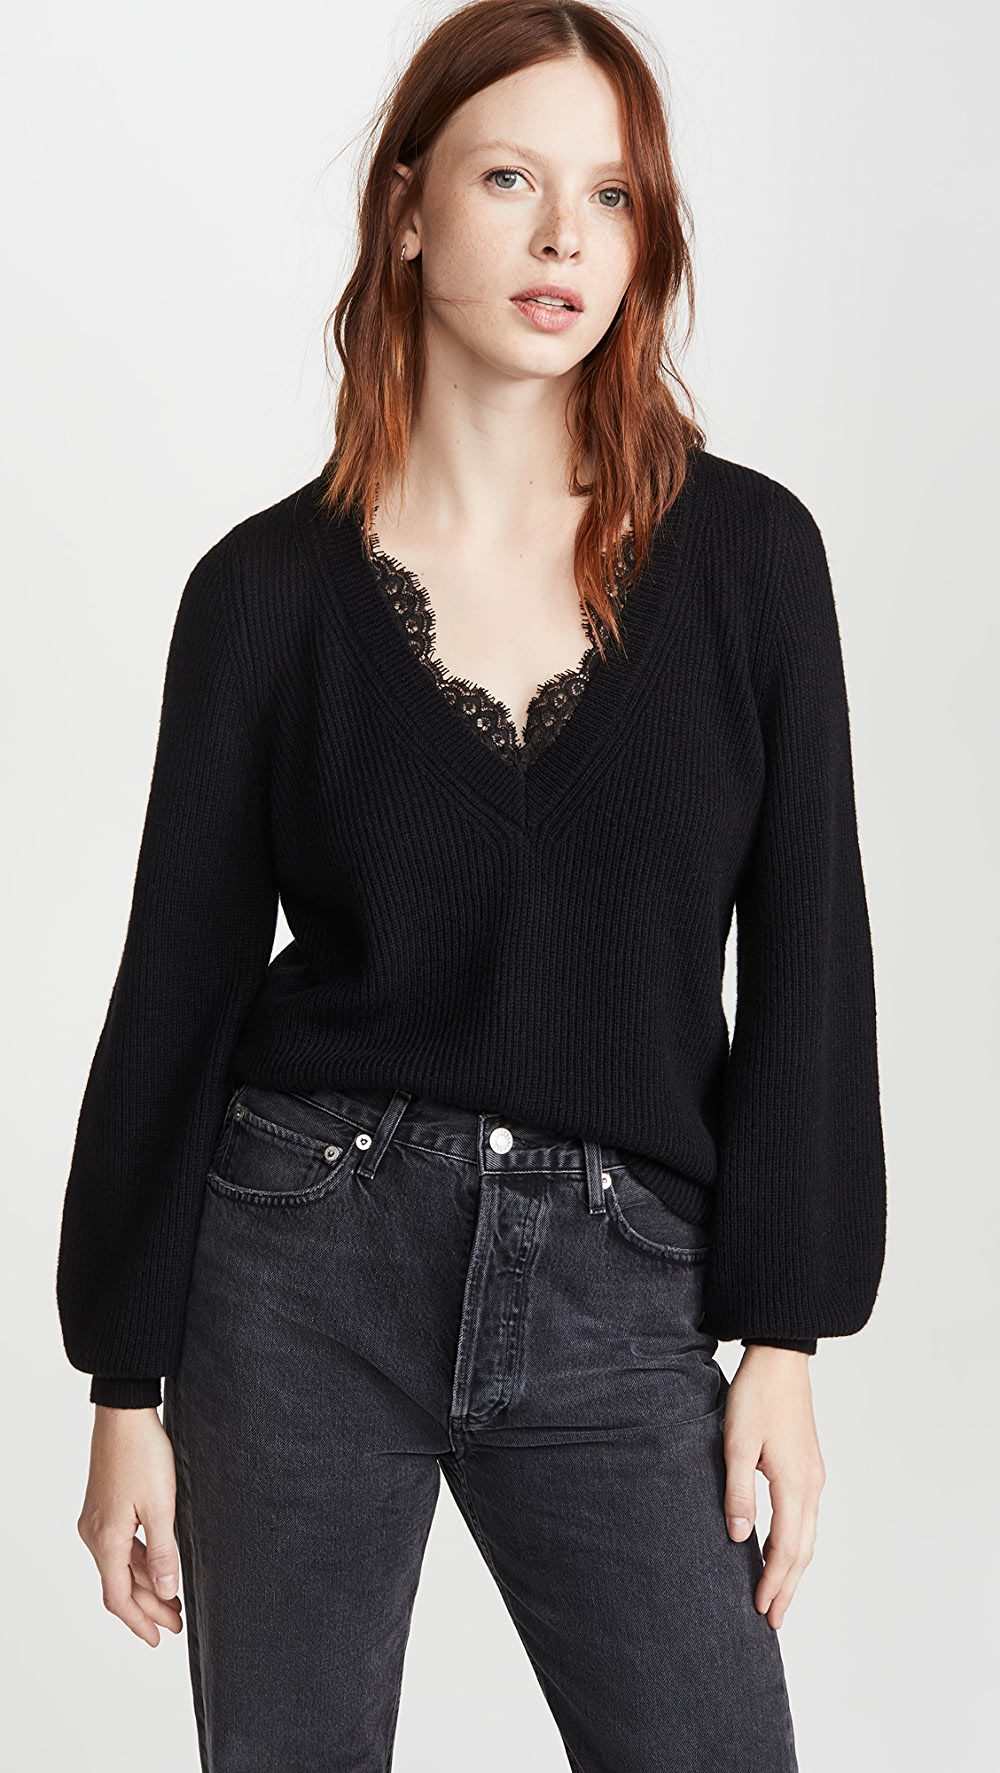 2019 Fashion Saylor - Eugenie Sweater Consumers First